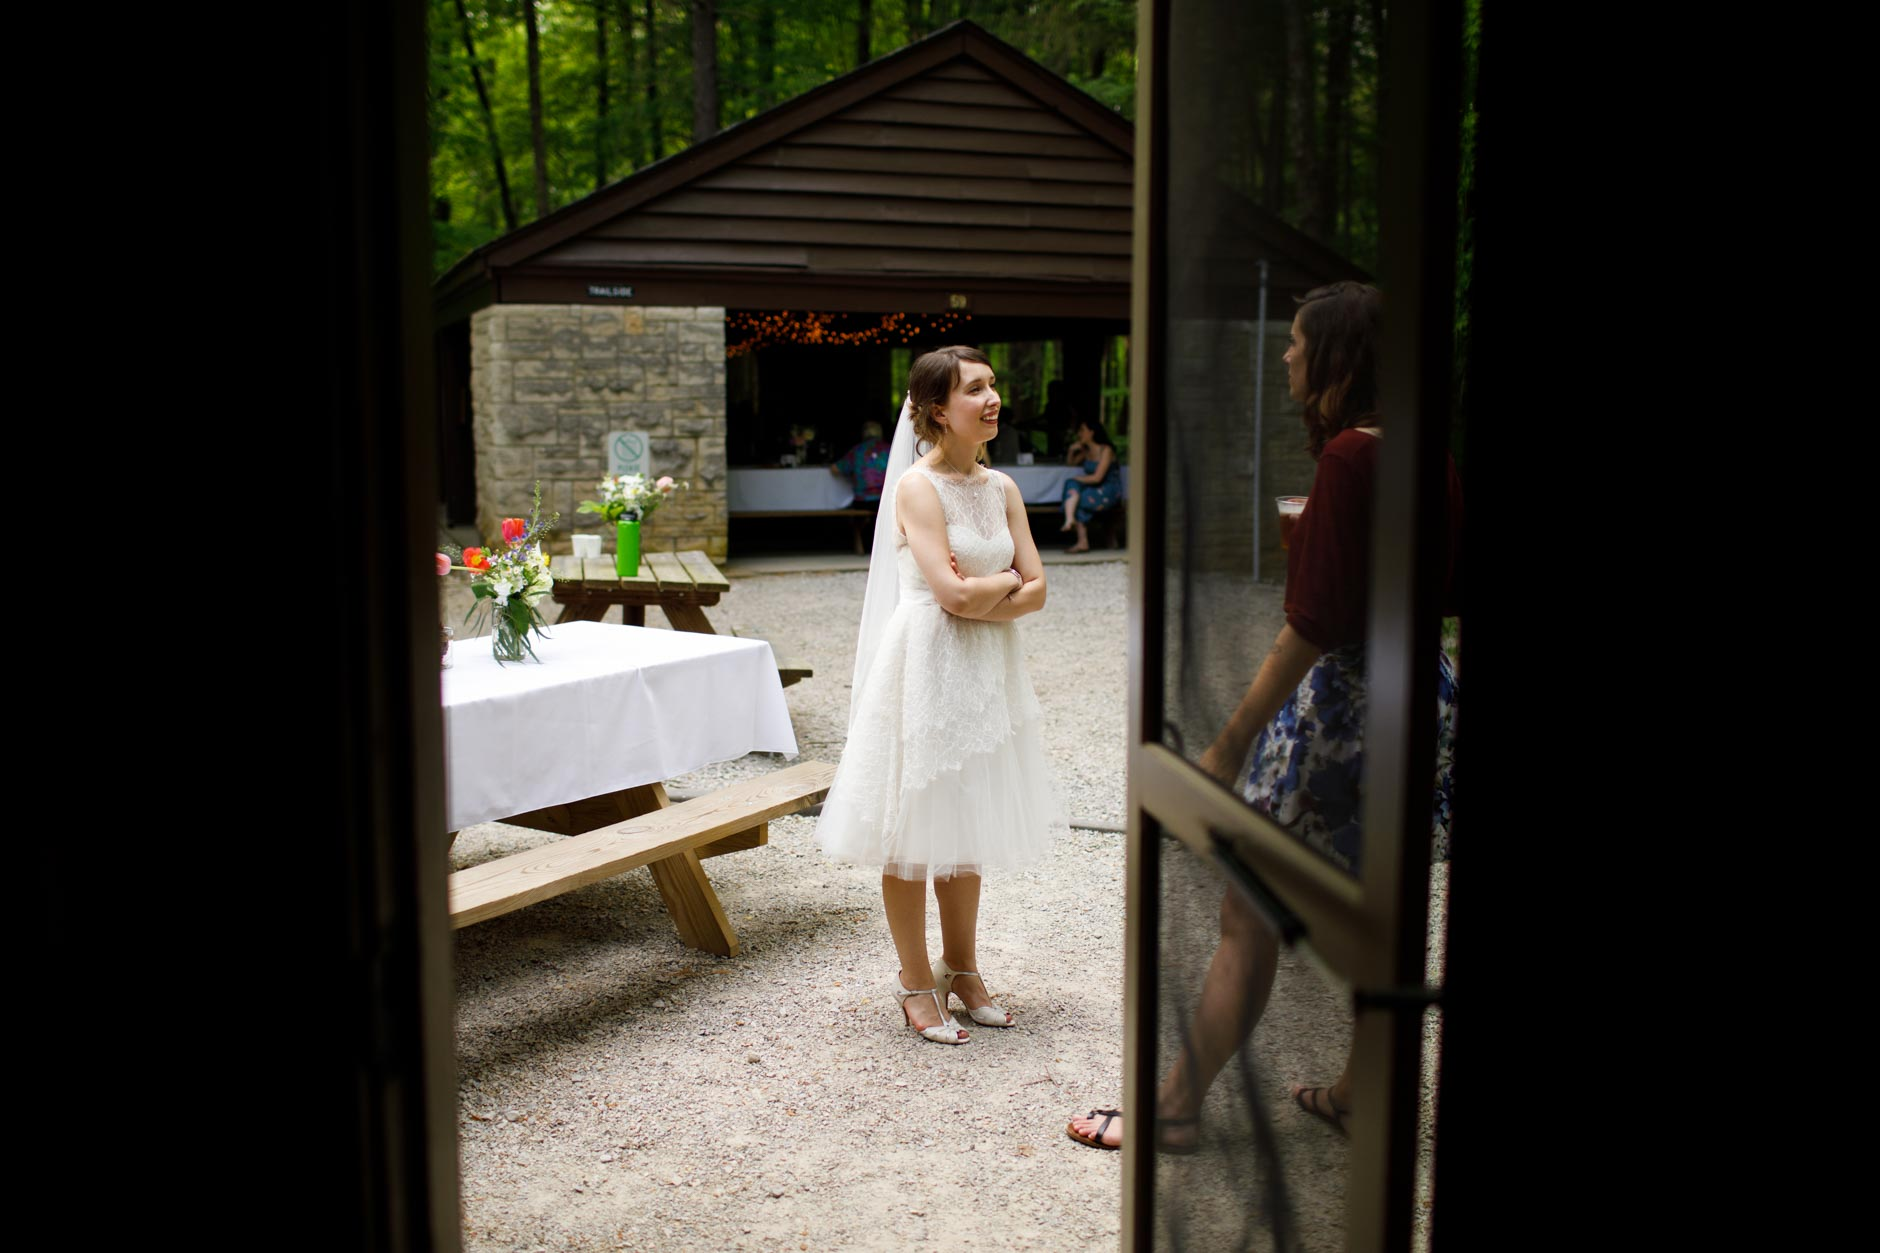 Scenes from the wedding of Joe Toth and Kirstin Wade at McCormick's Creek State Park near Spencer, Indiana on Saturday, May 12, 2018. (Photo by James Brosher)